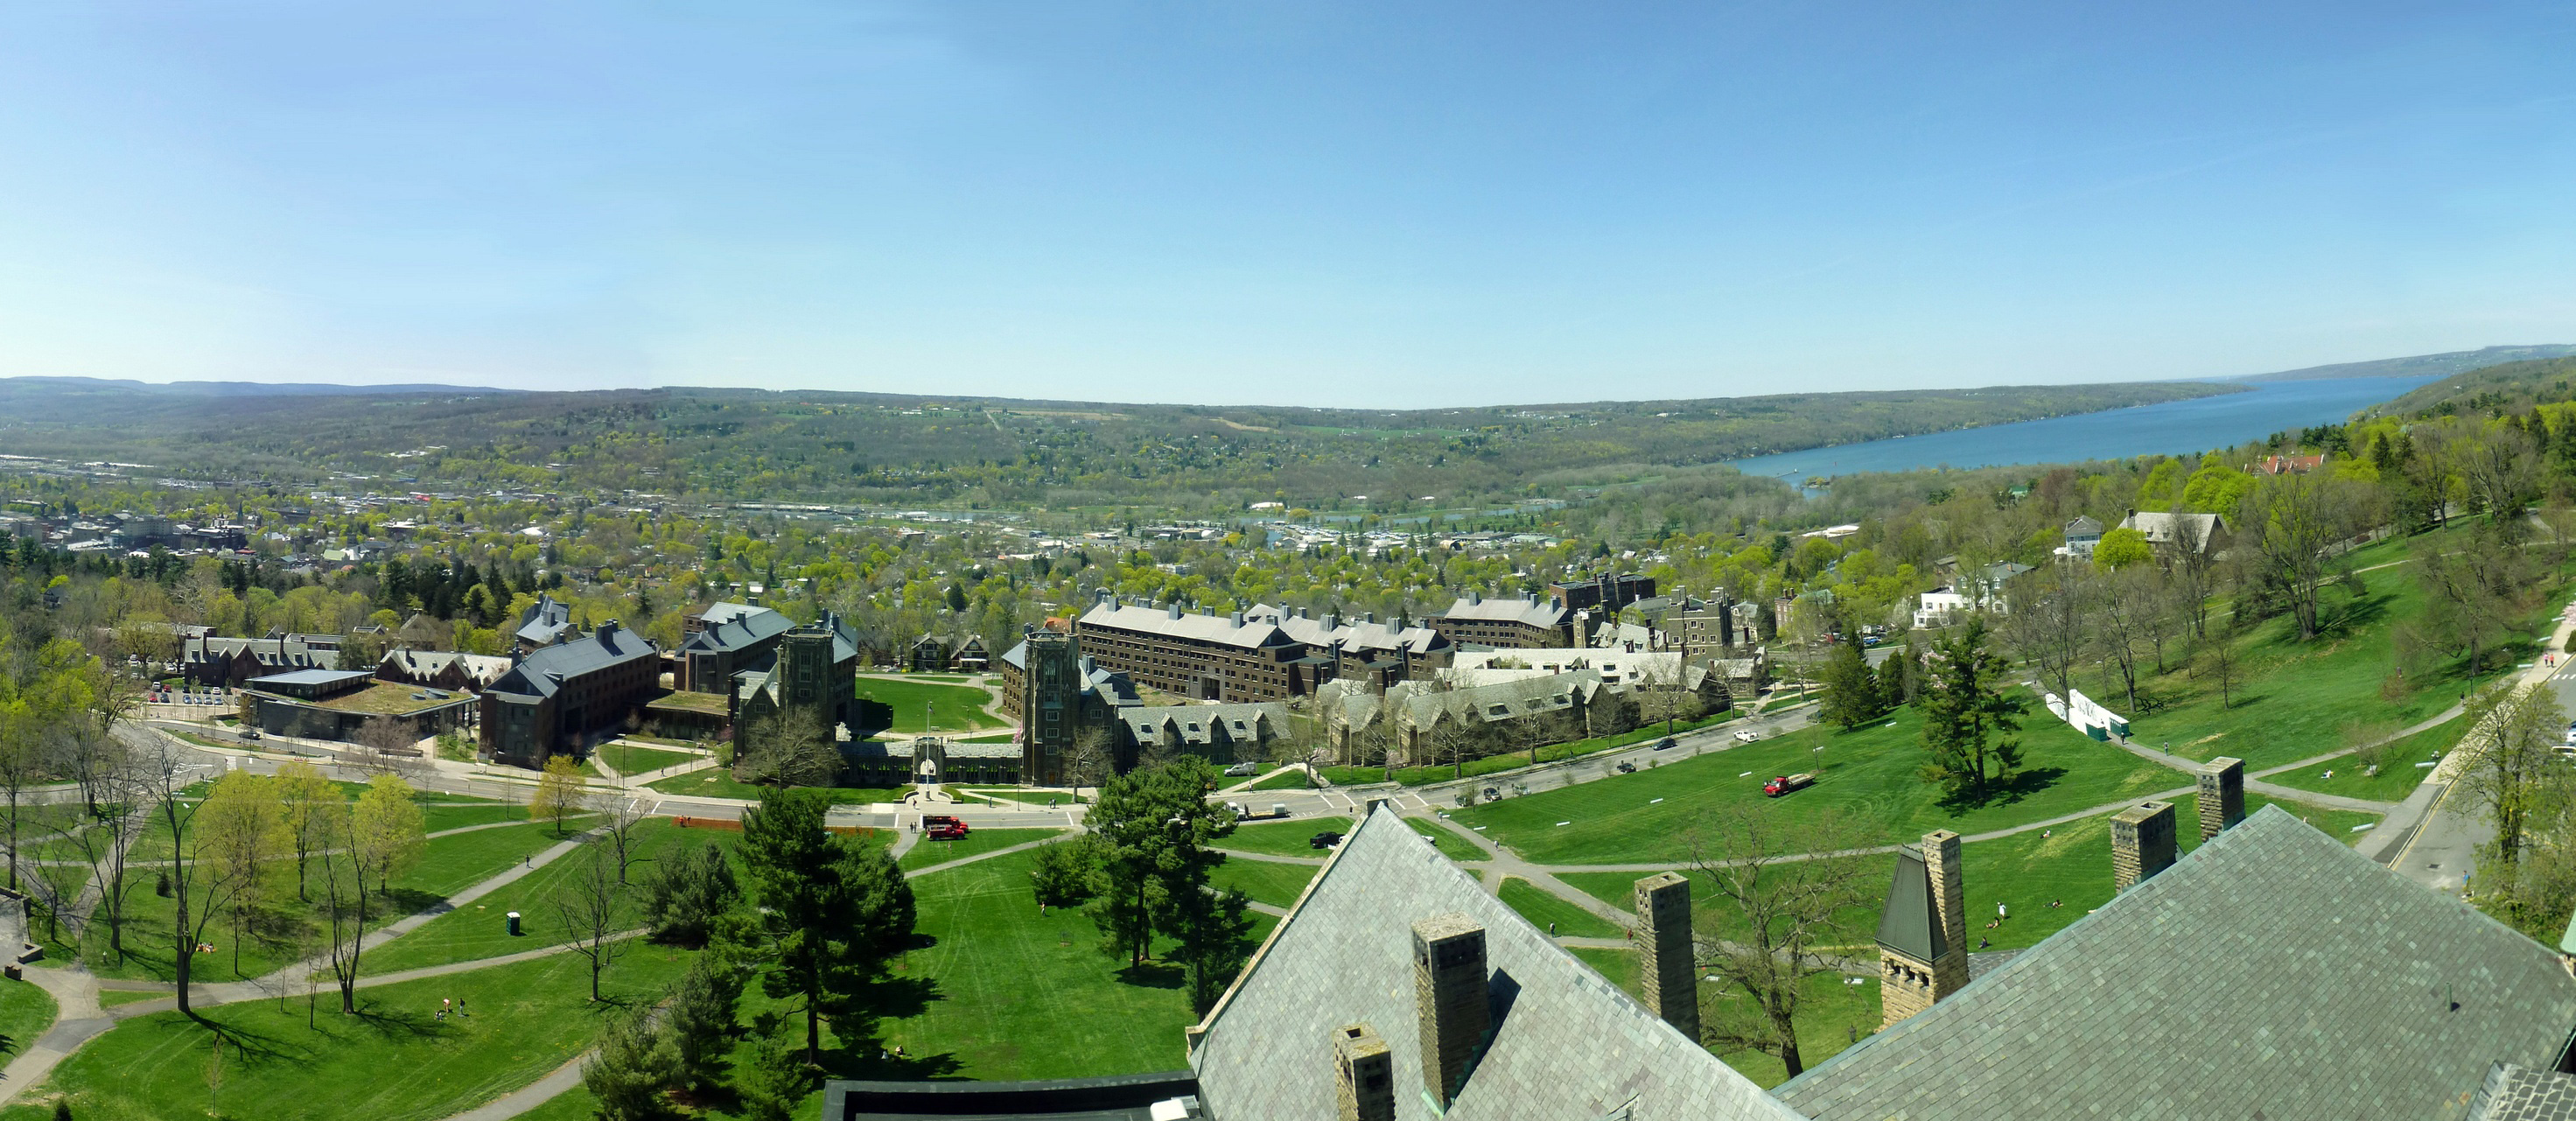 File:Cornell West Campus from McGraw Tower.jpg - Wikimedia ...